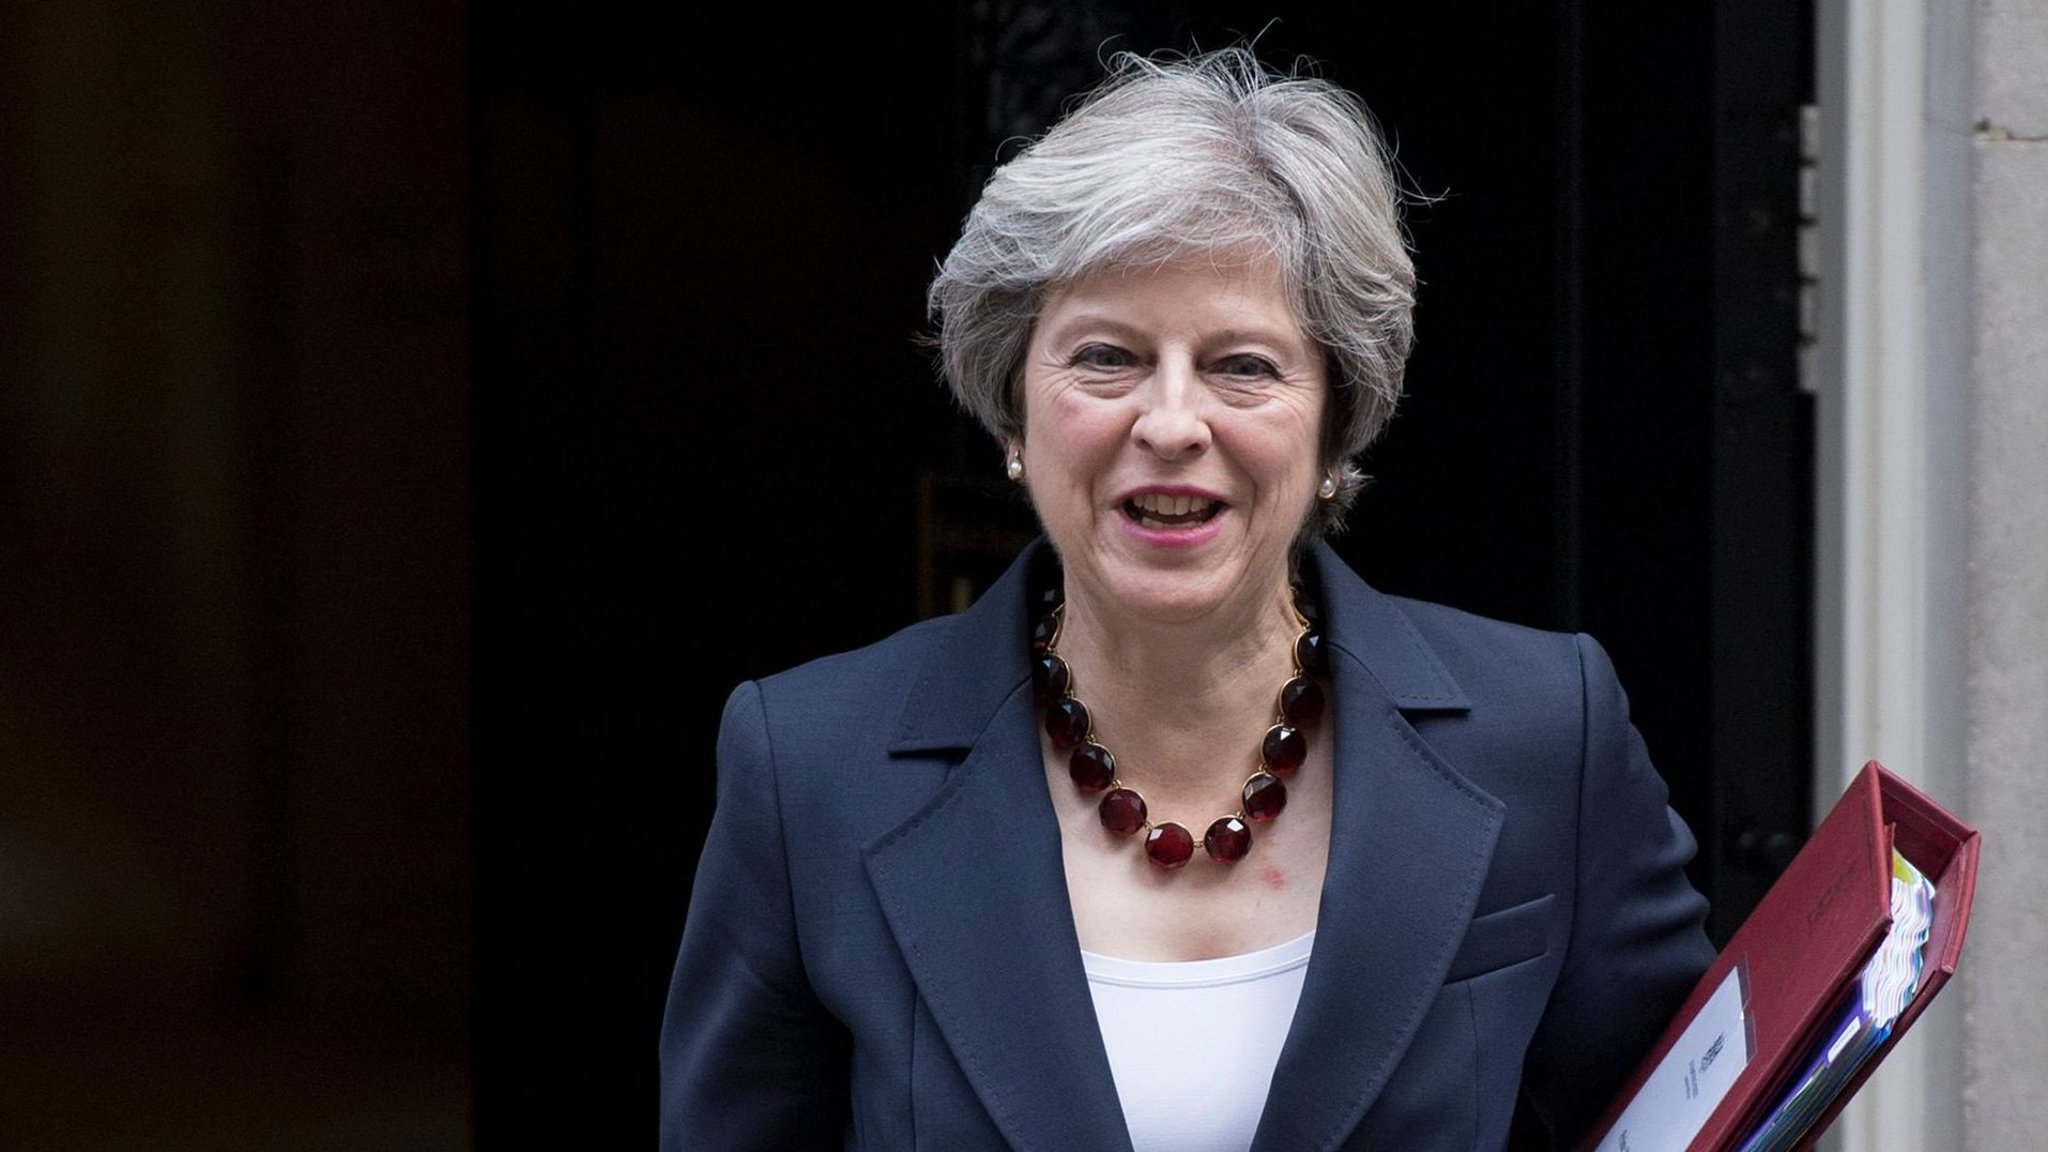 May gets backing for bigger bill to break Brexit deadlock